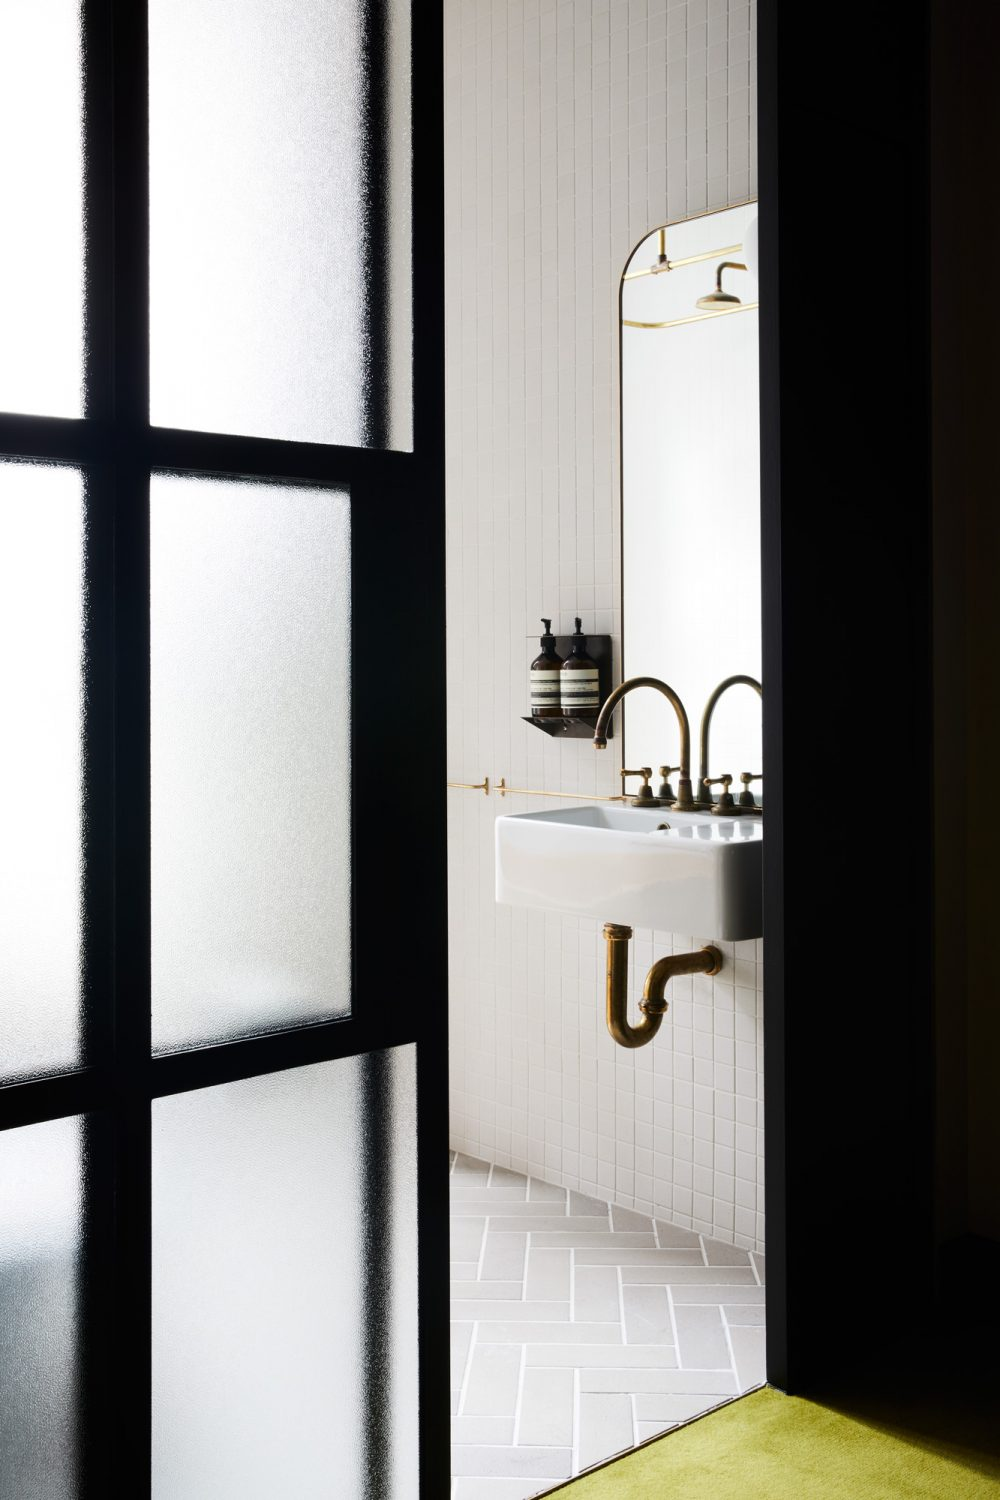 Currently Obsessing Over Wall-Mounted Bathroom Sinks, and Here's Why